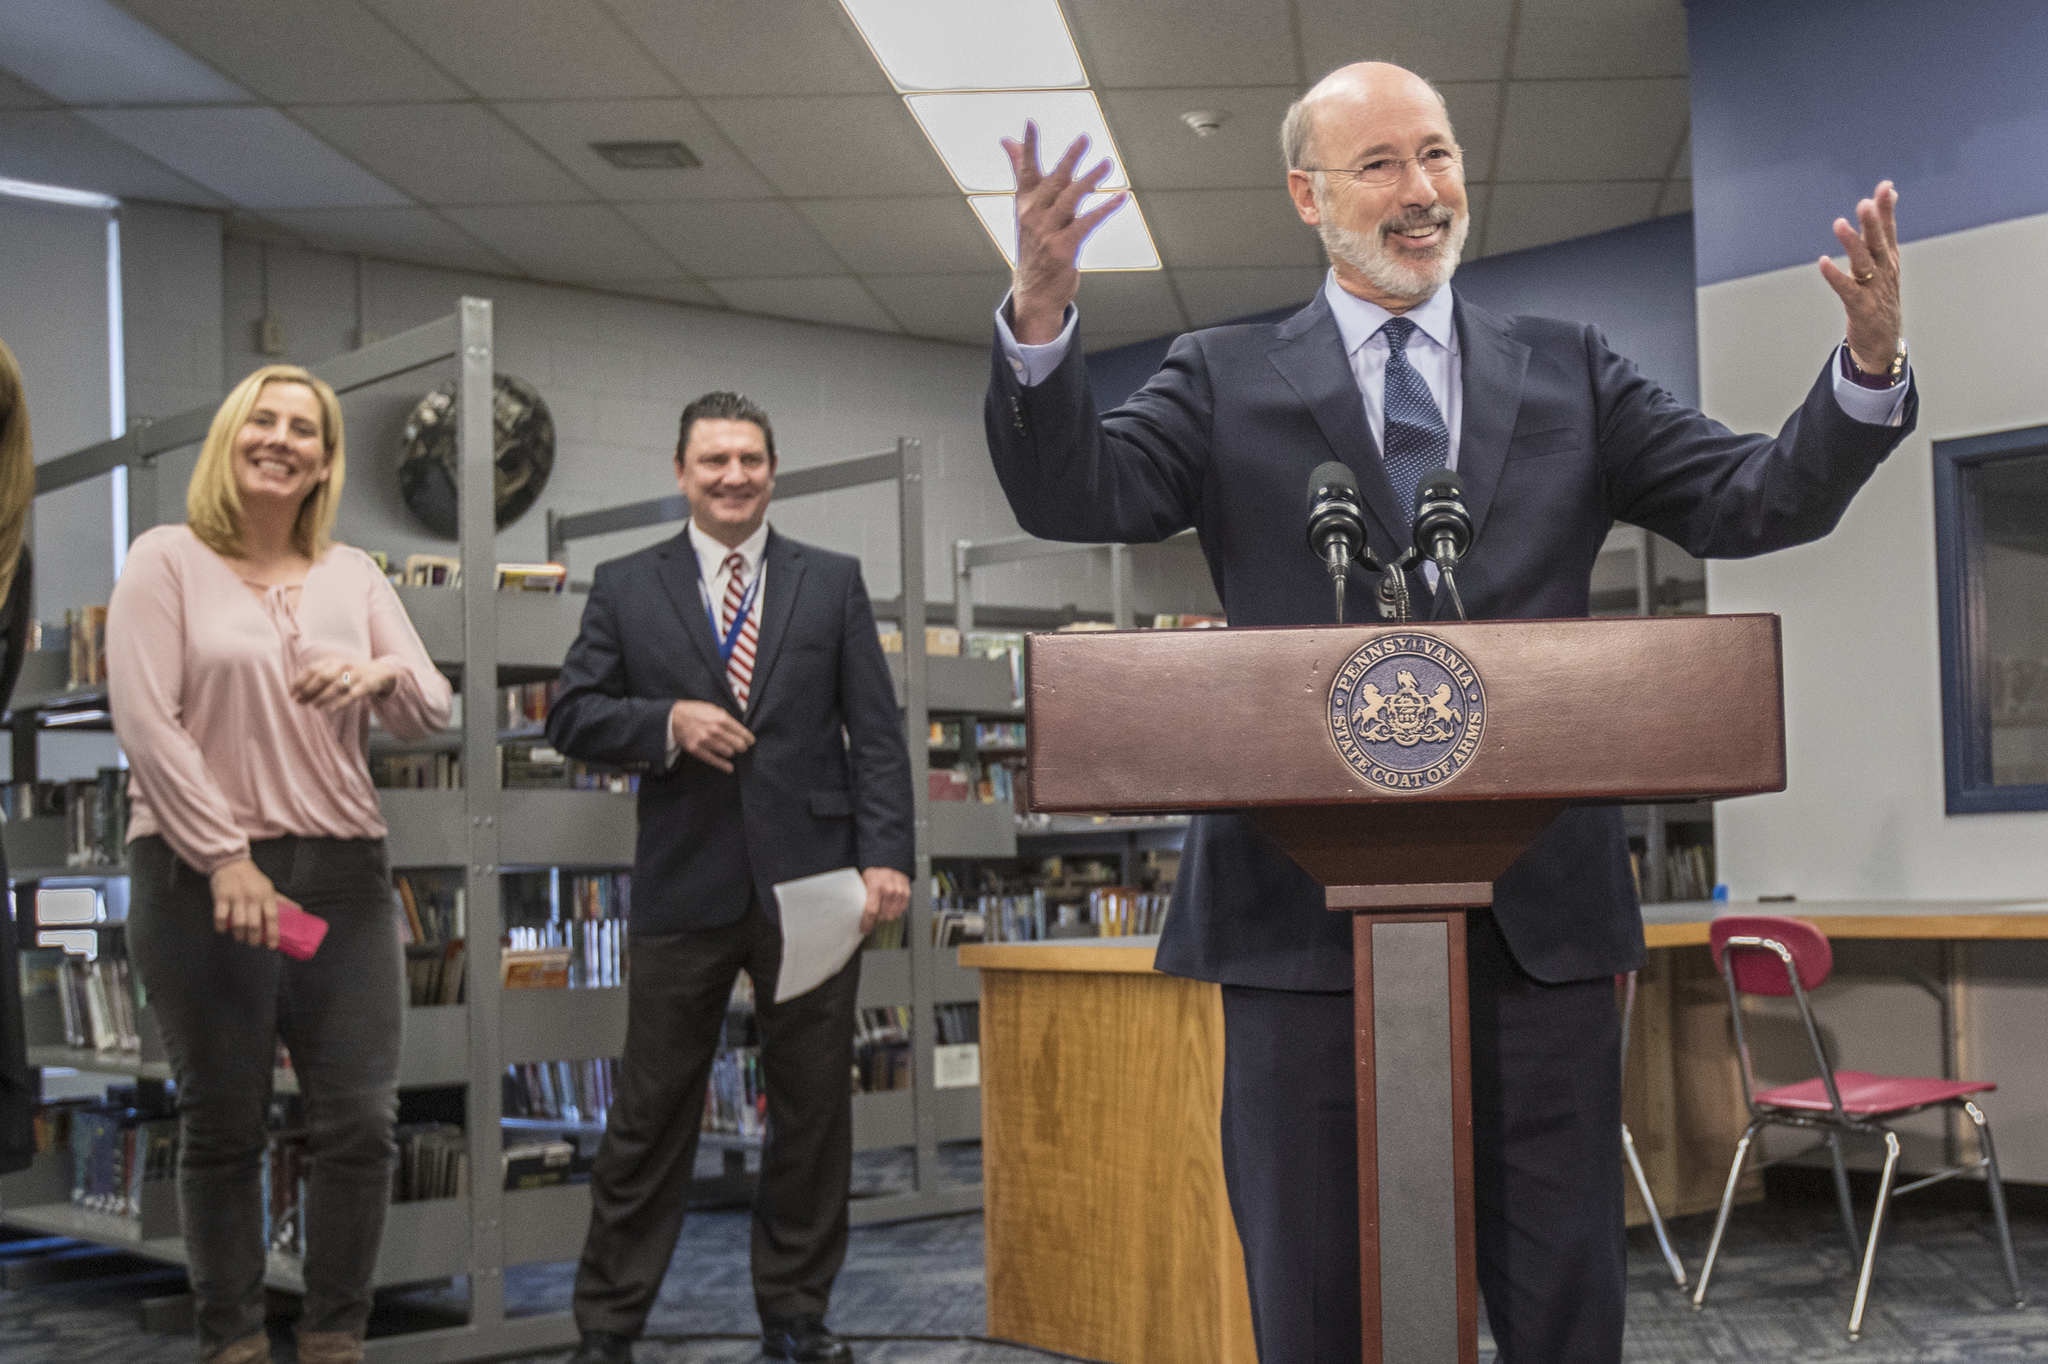 Pa. Gov. Wolf on Wednesday announced a shift in the time when state standardized tests would be administered to hundreds of thousands of children across Pennsylvania.